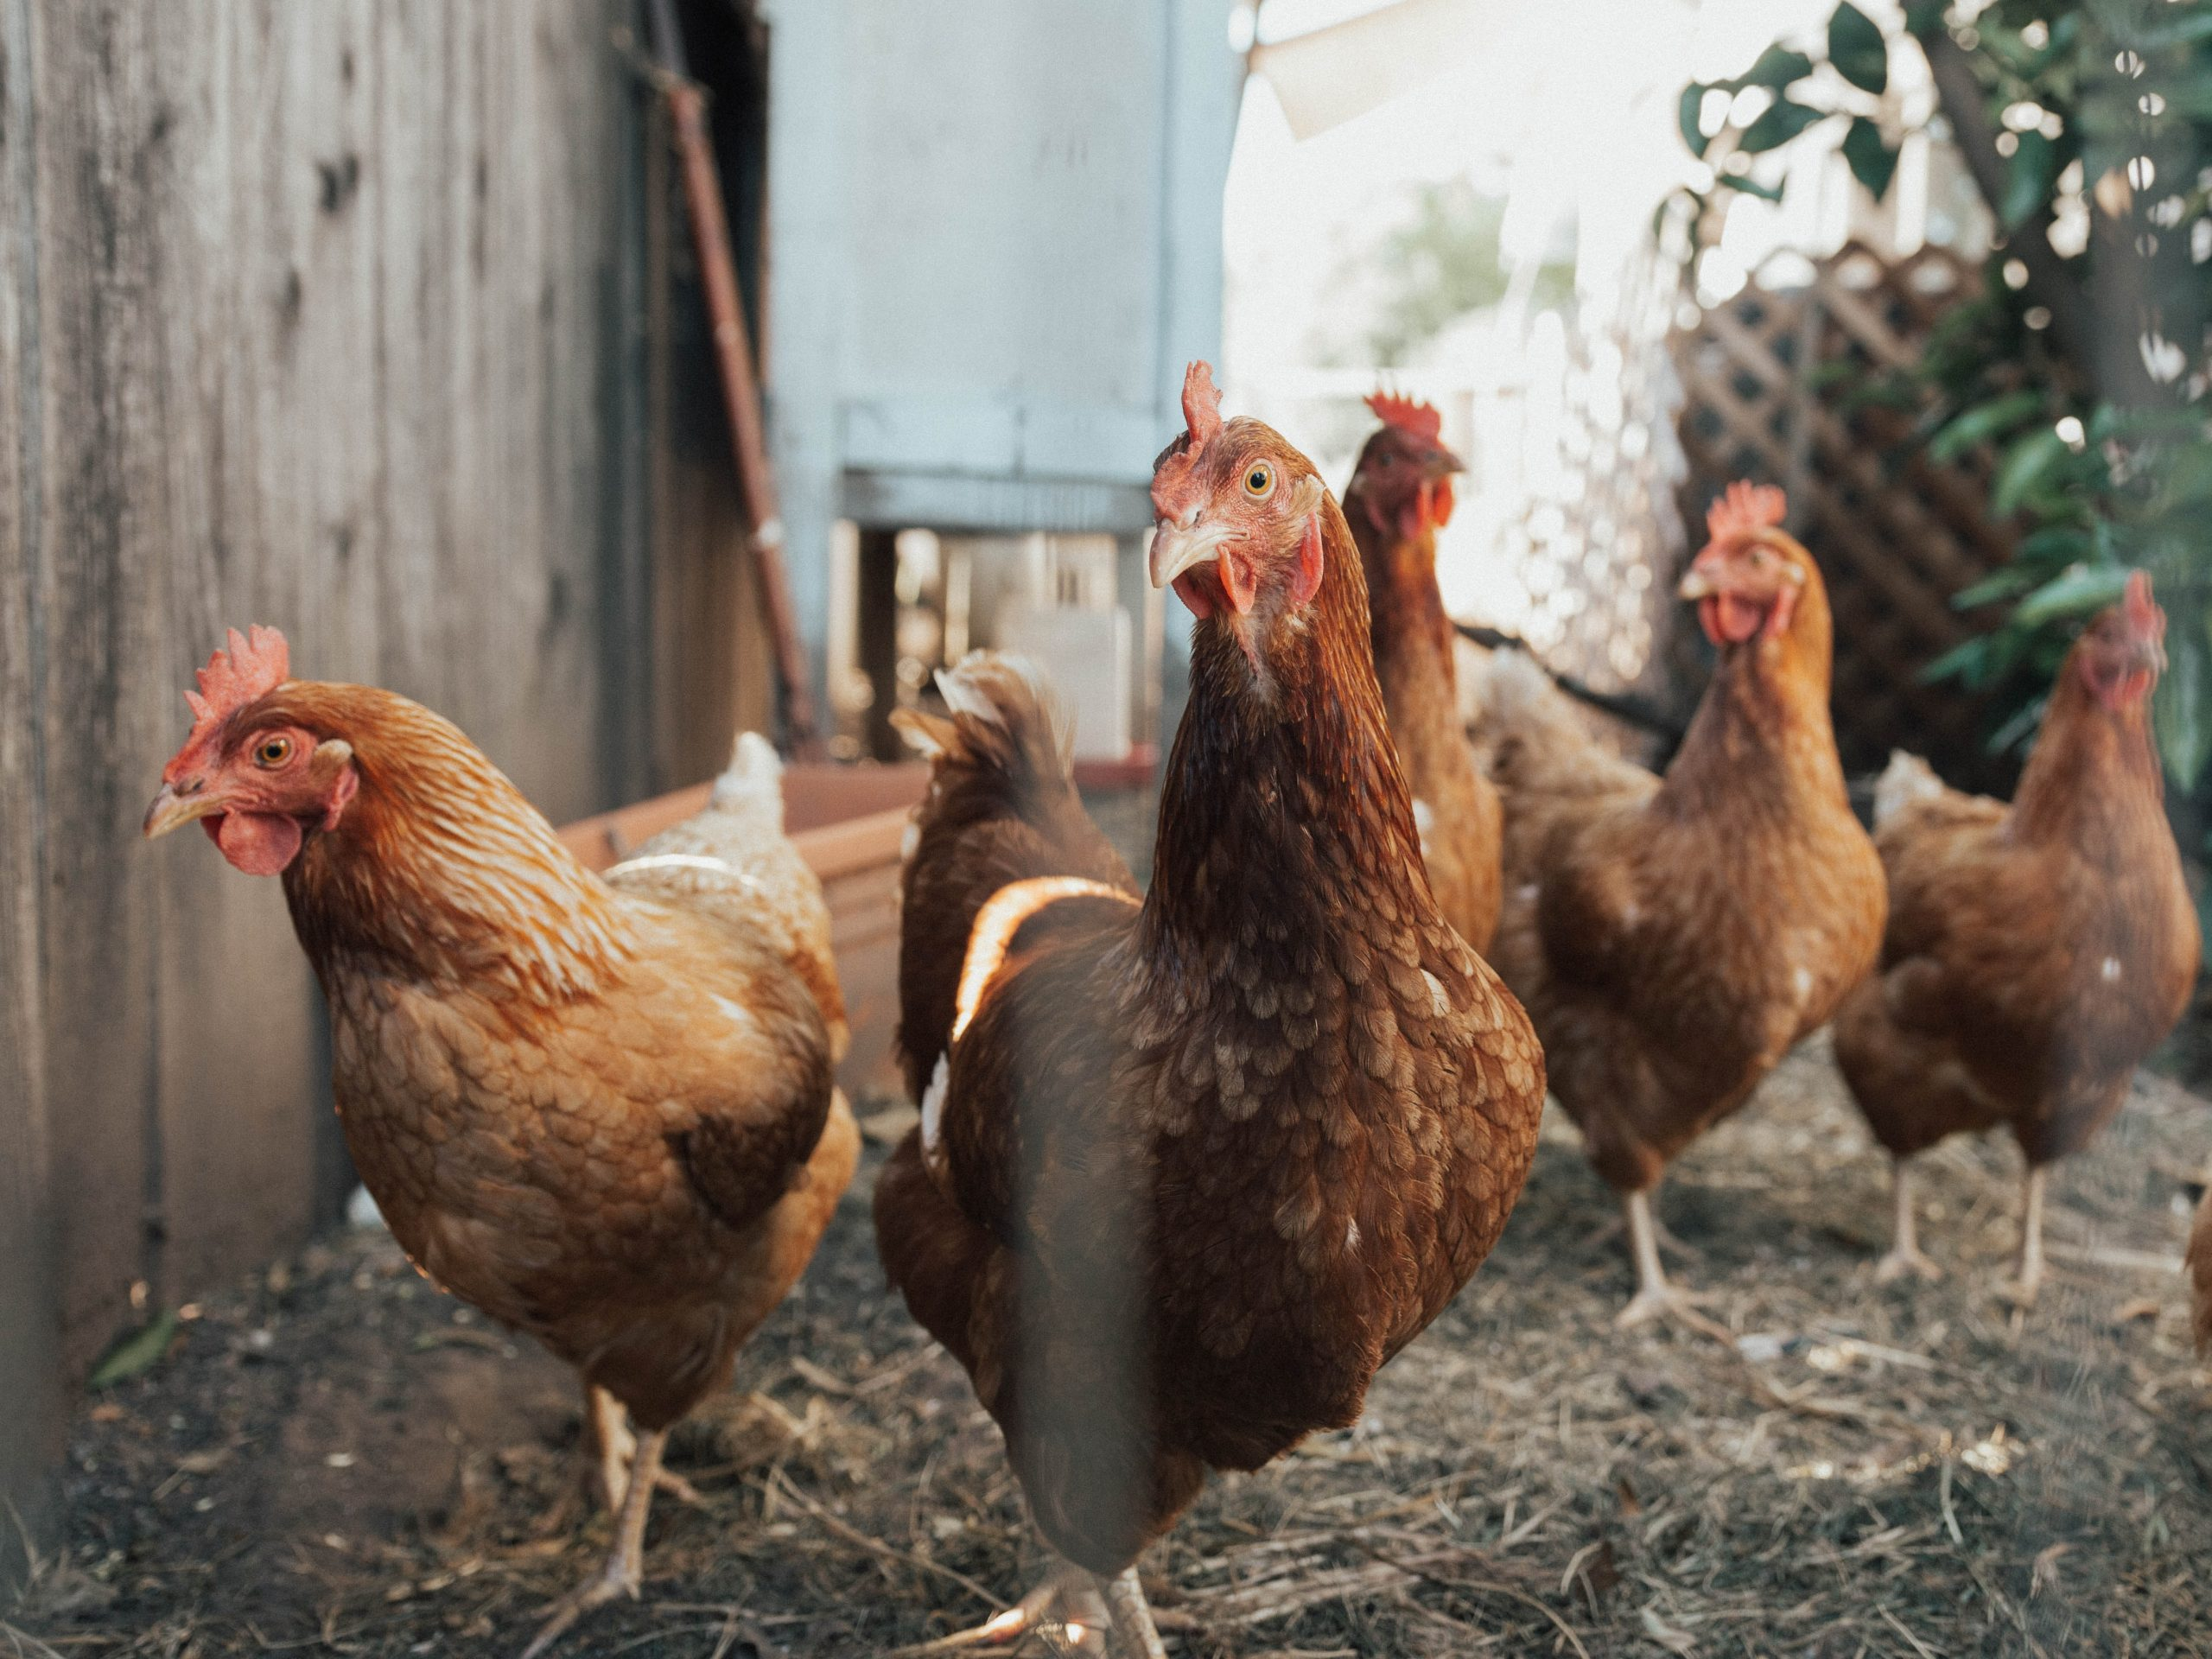 Free chickens are being given to vaccinated residents in one Indonesian village.